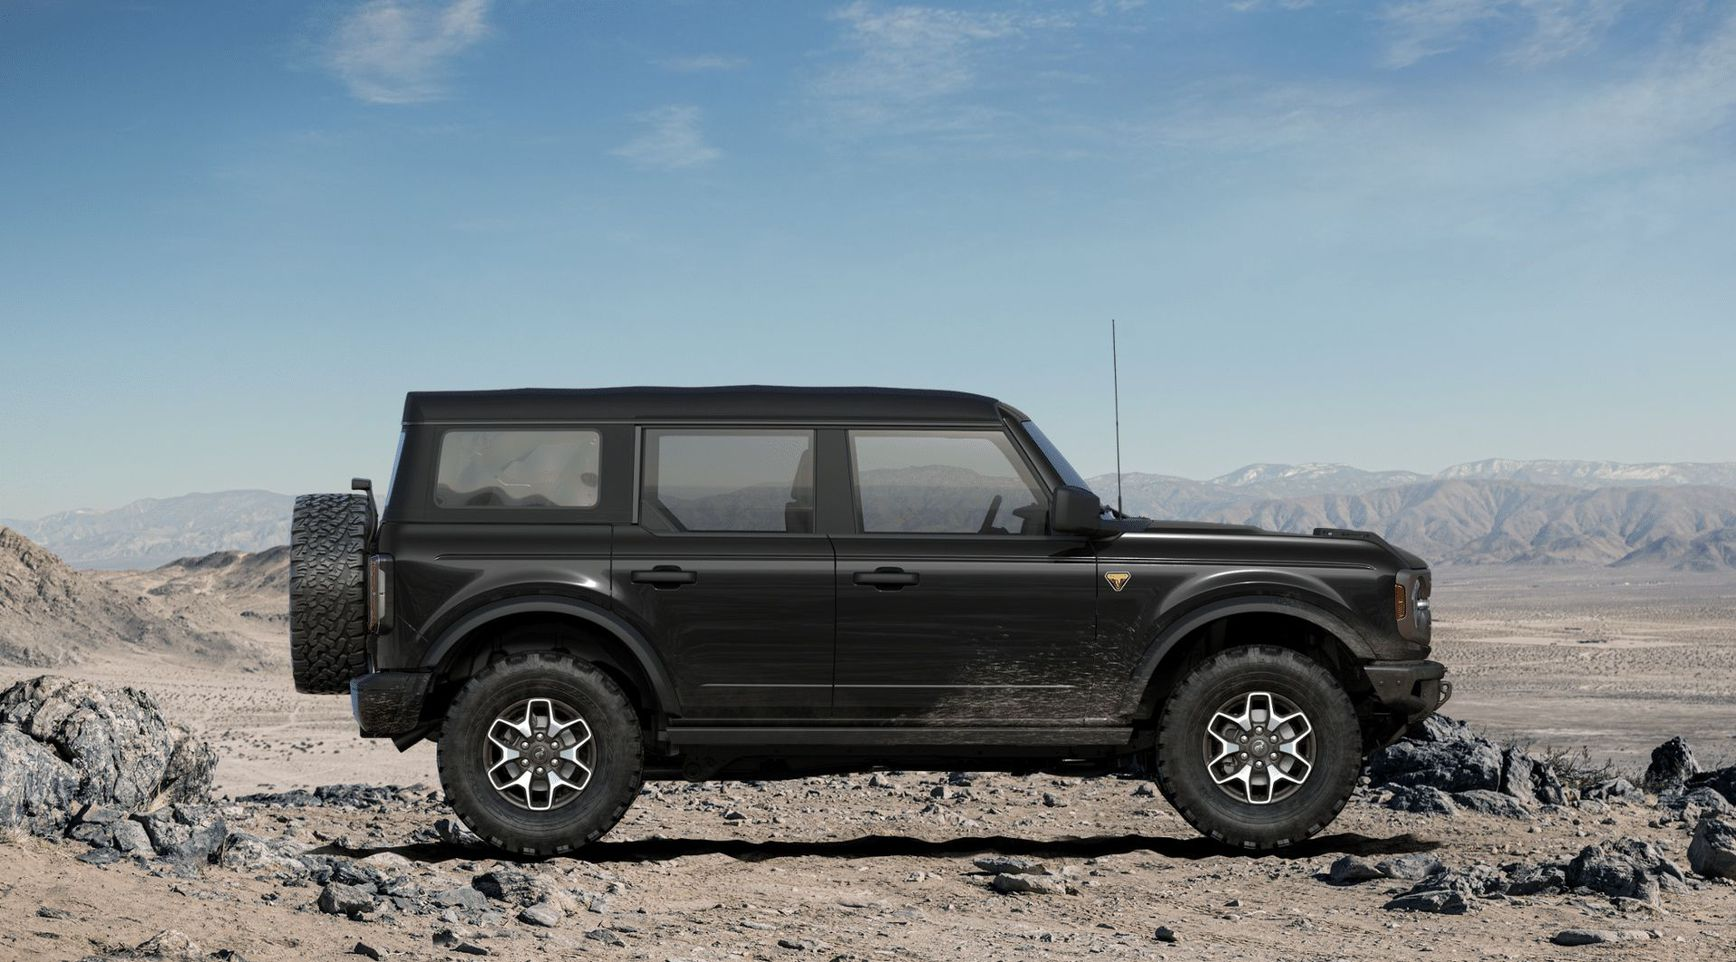 Ford Bronco 2021 Badlands™